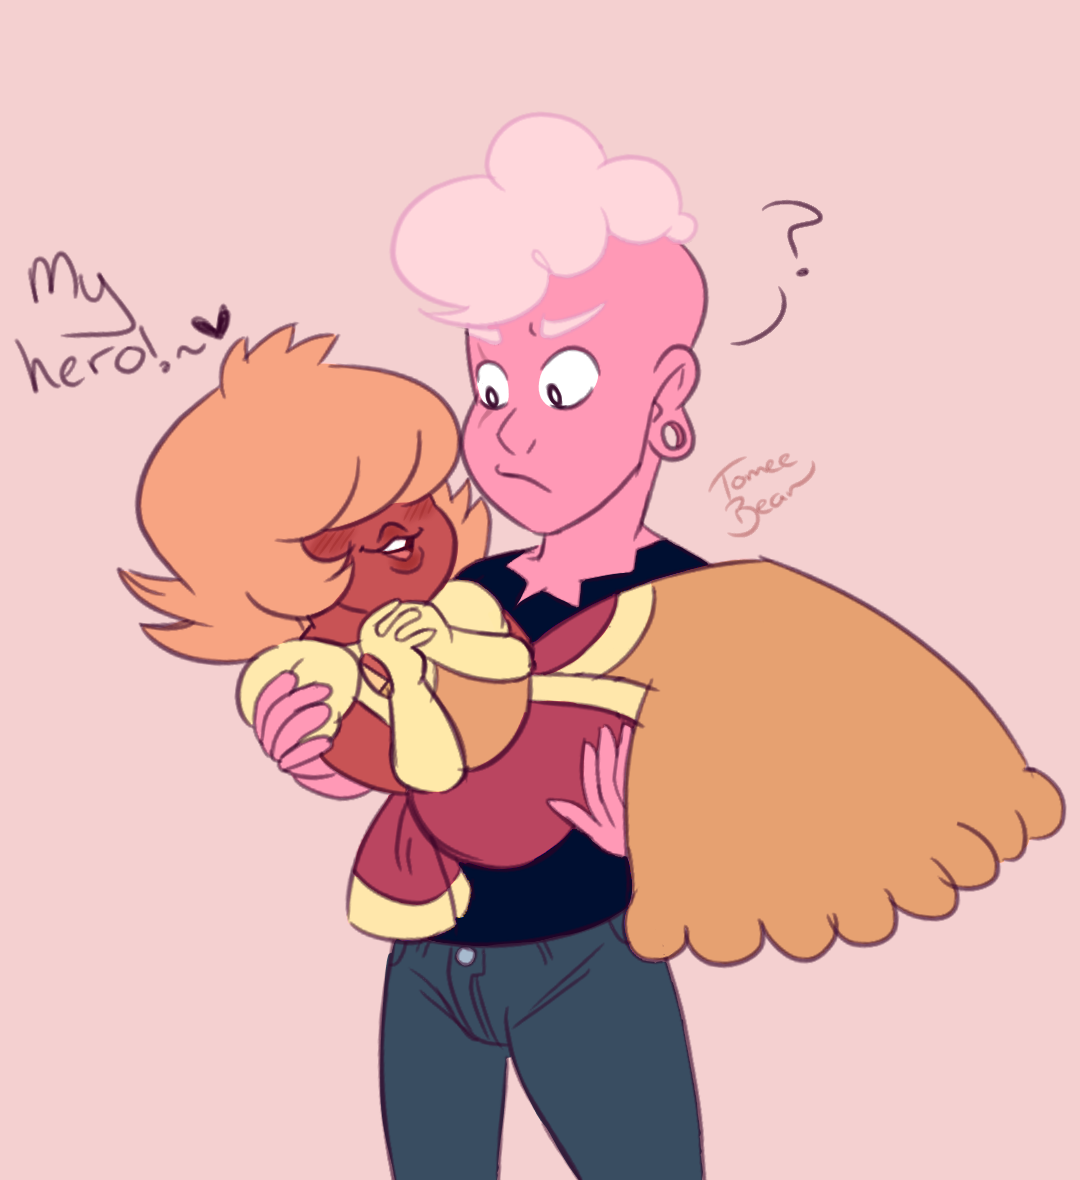 what's their ship name i must know